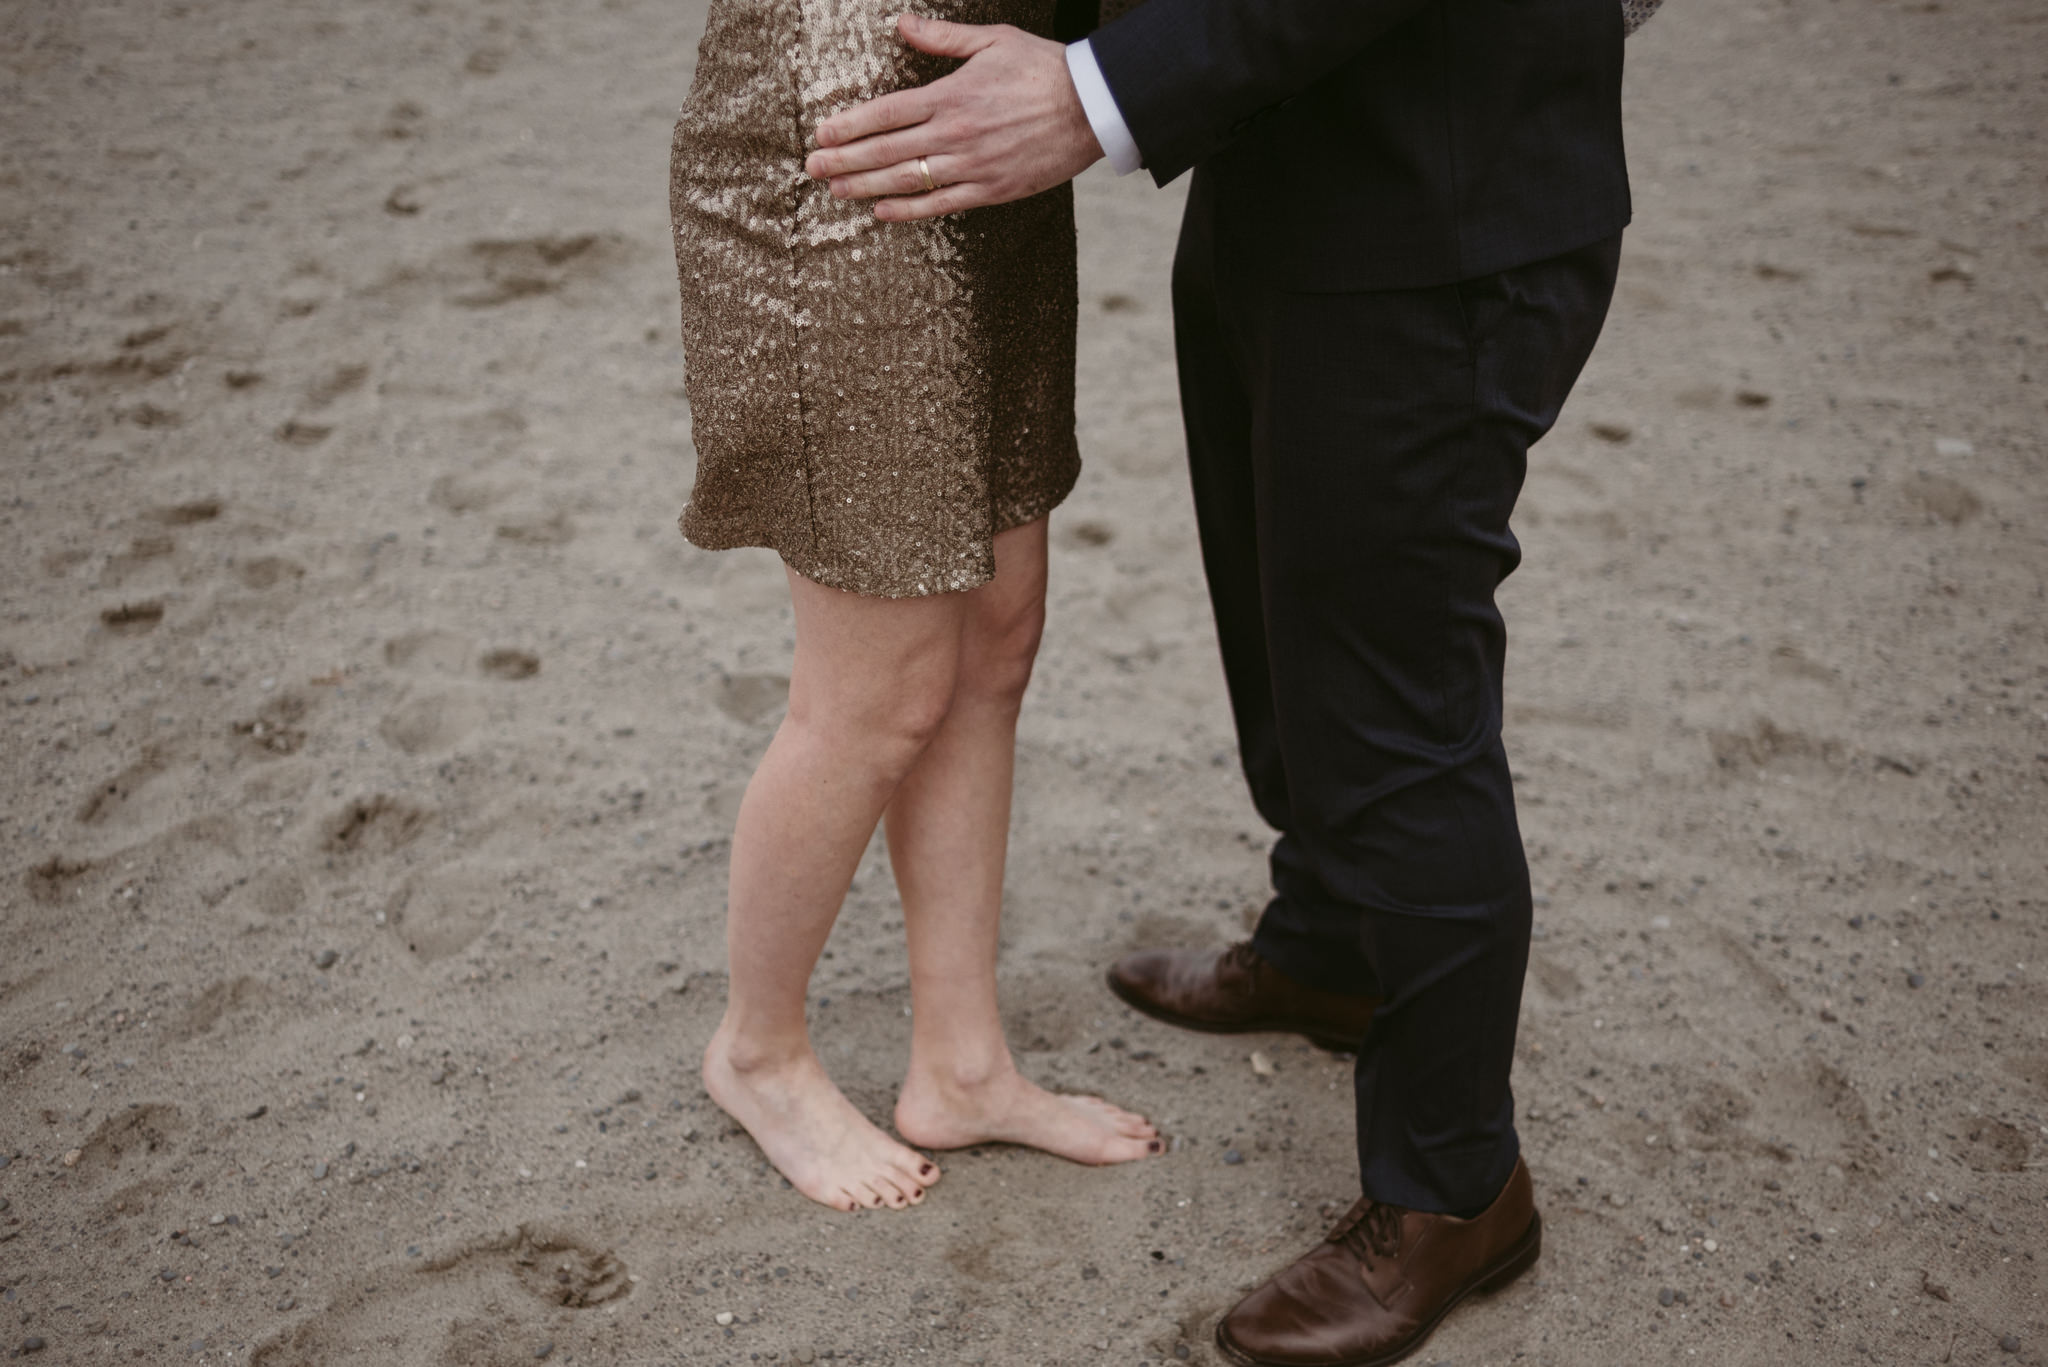 Couple hugging, woman barefoot in sand